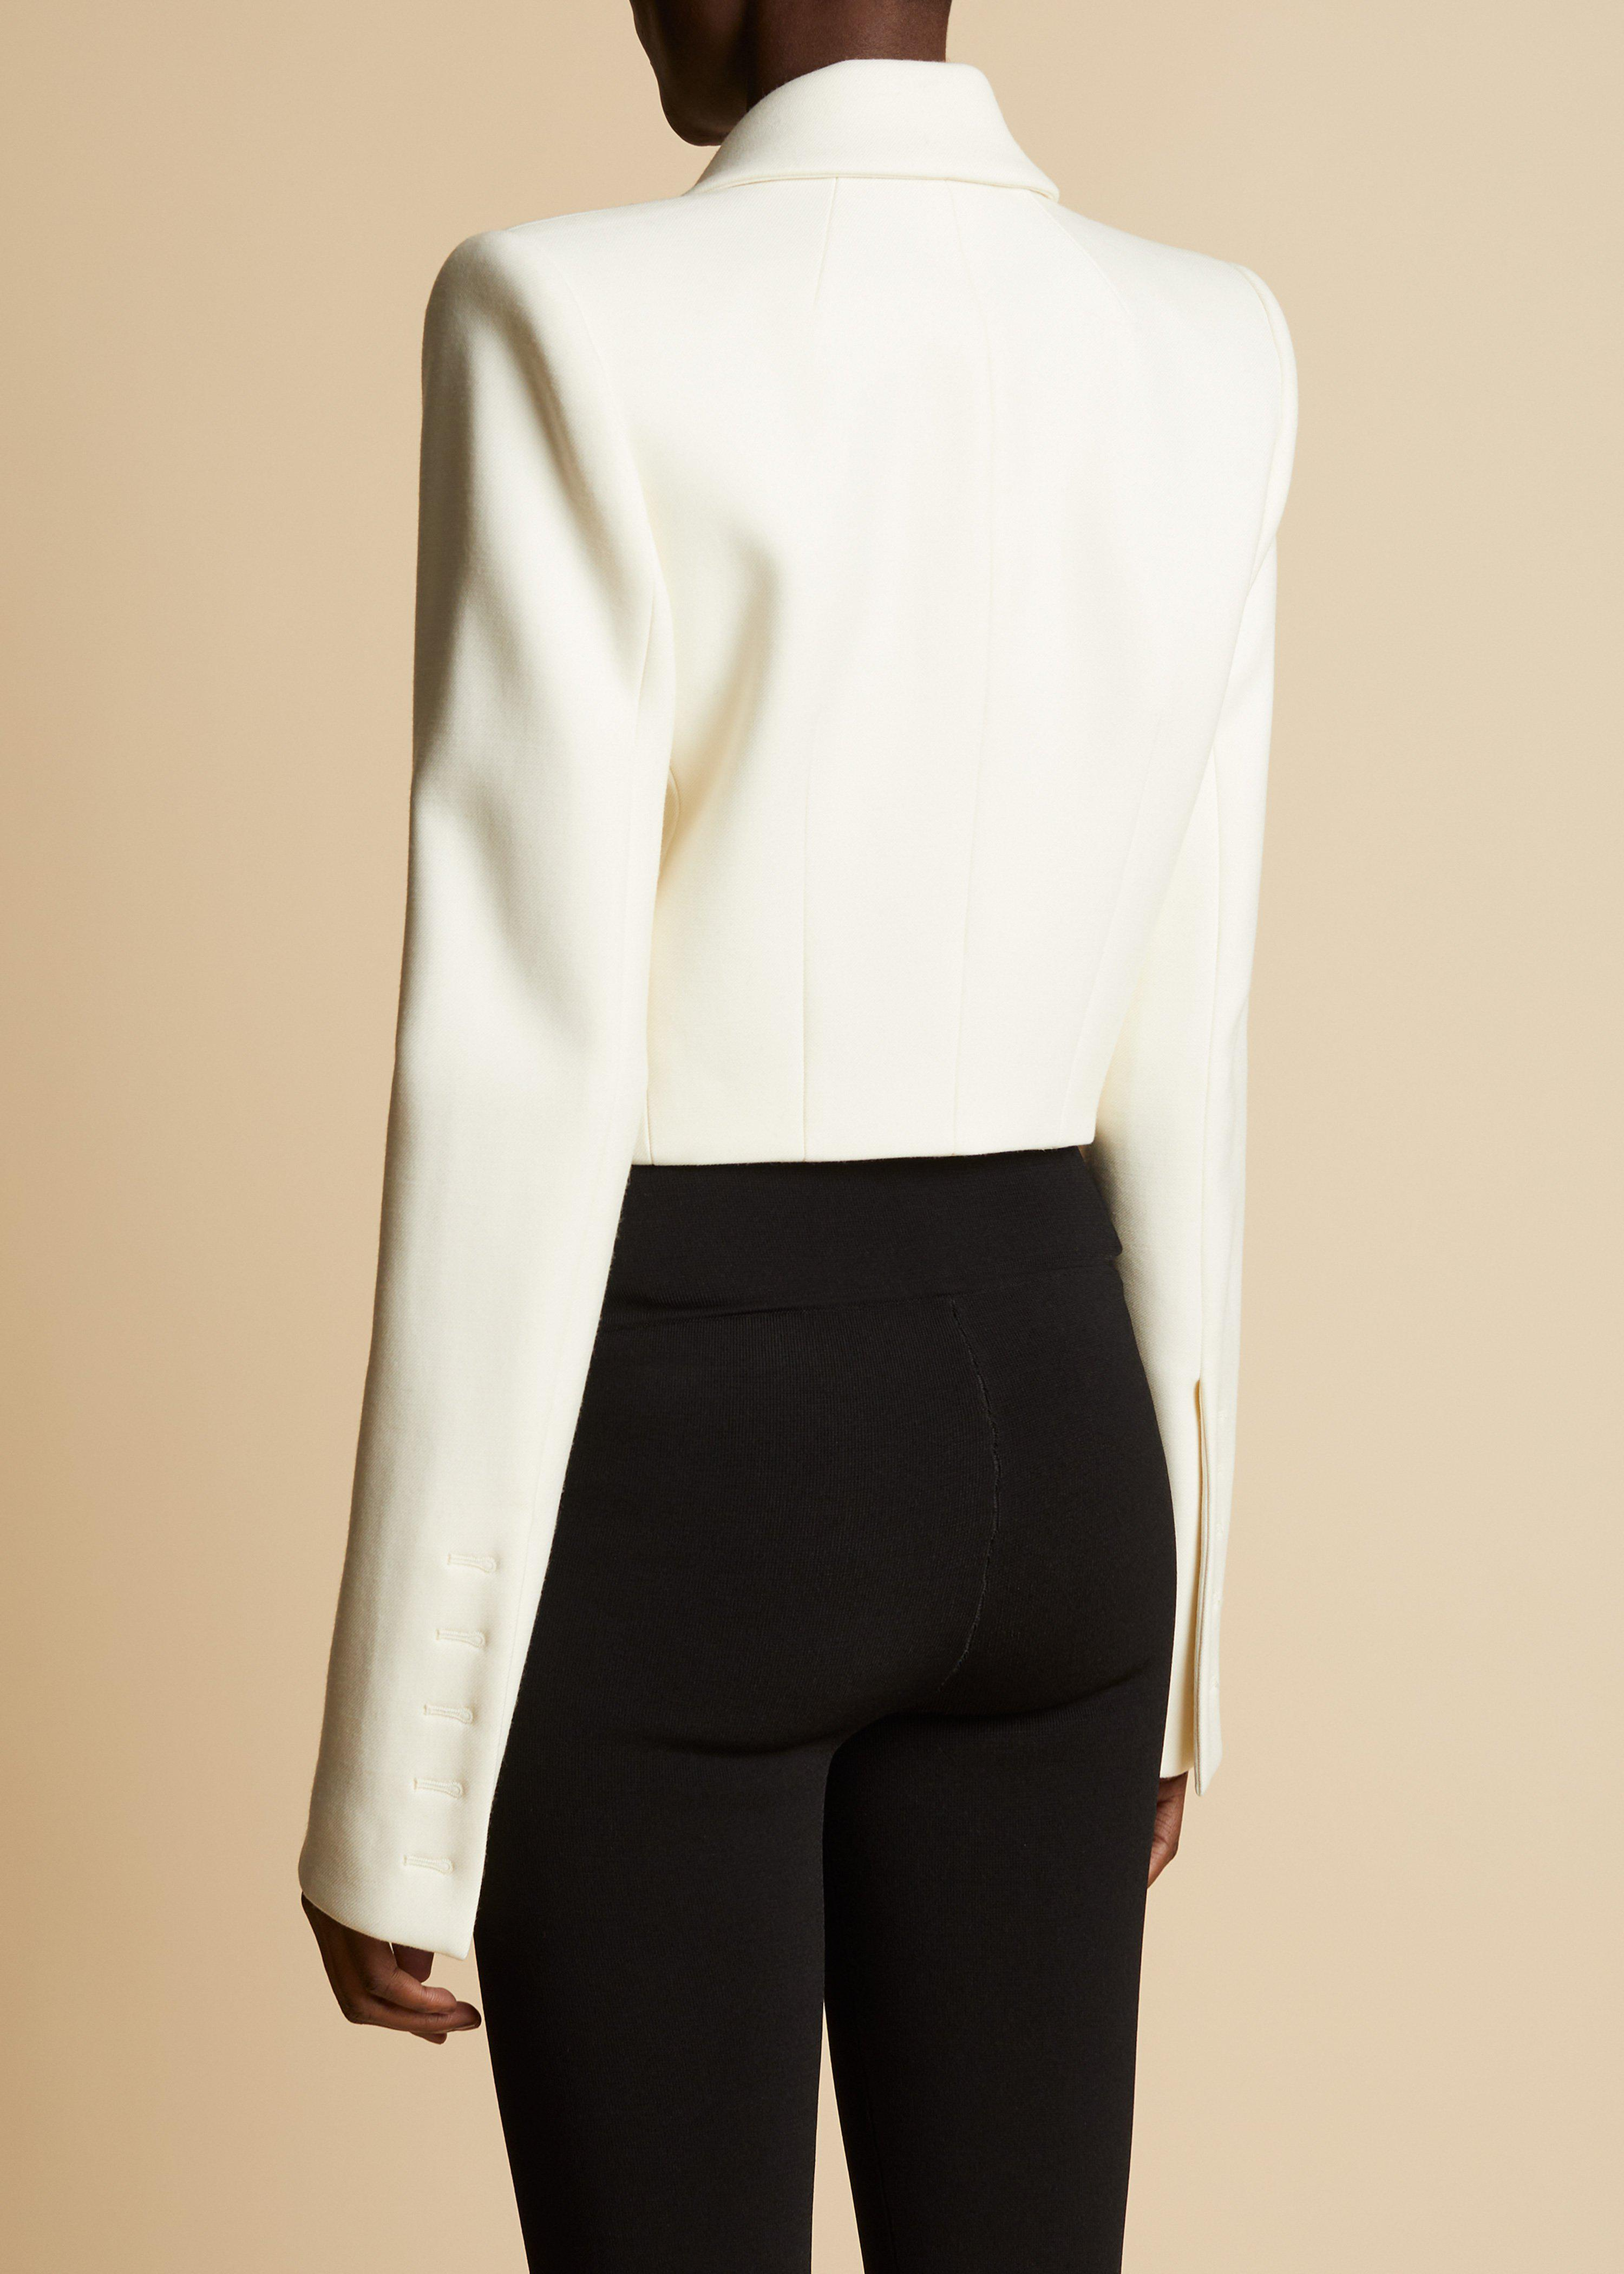 The Lucille Blazer in Ivory 2